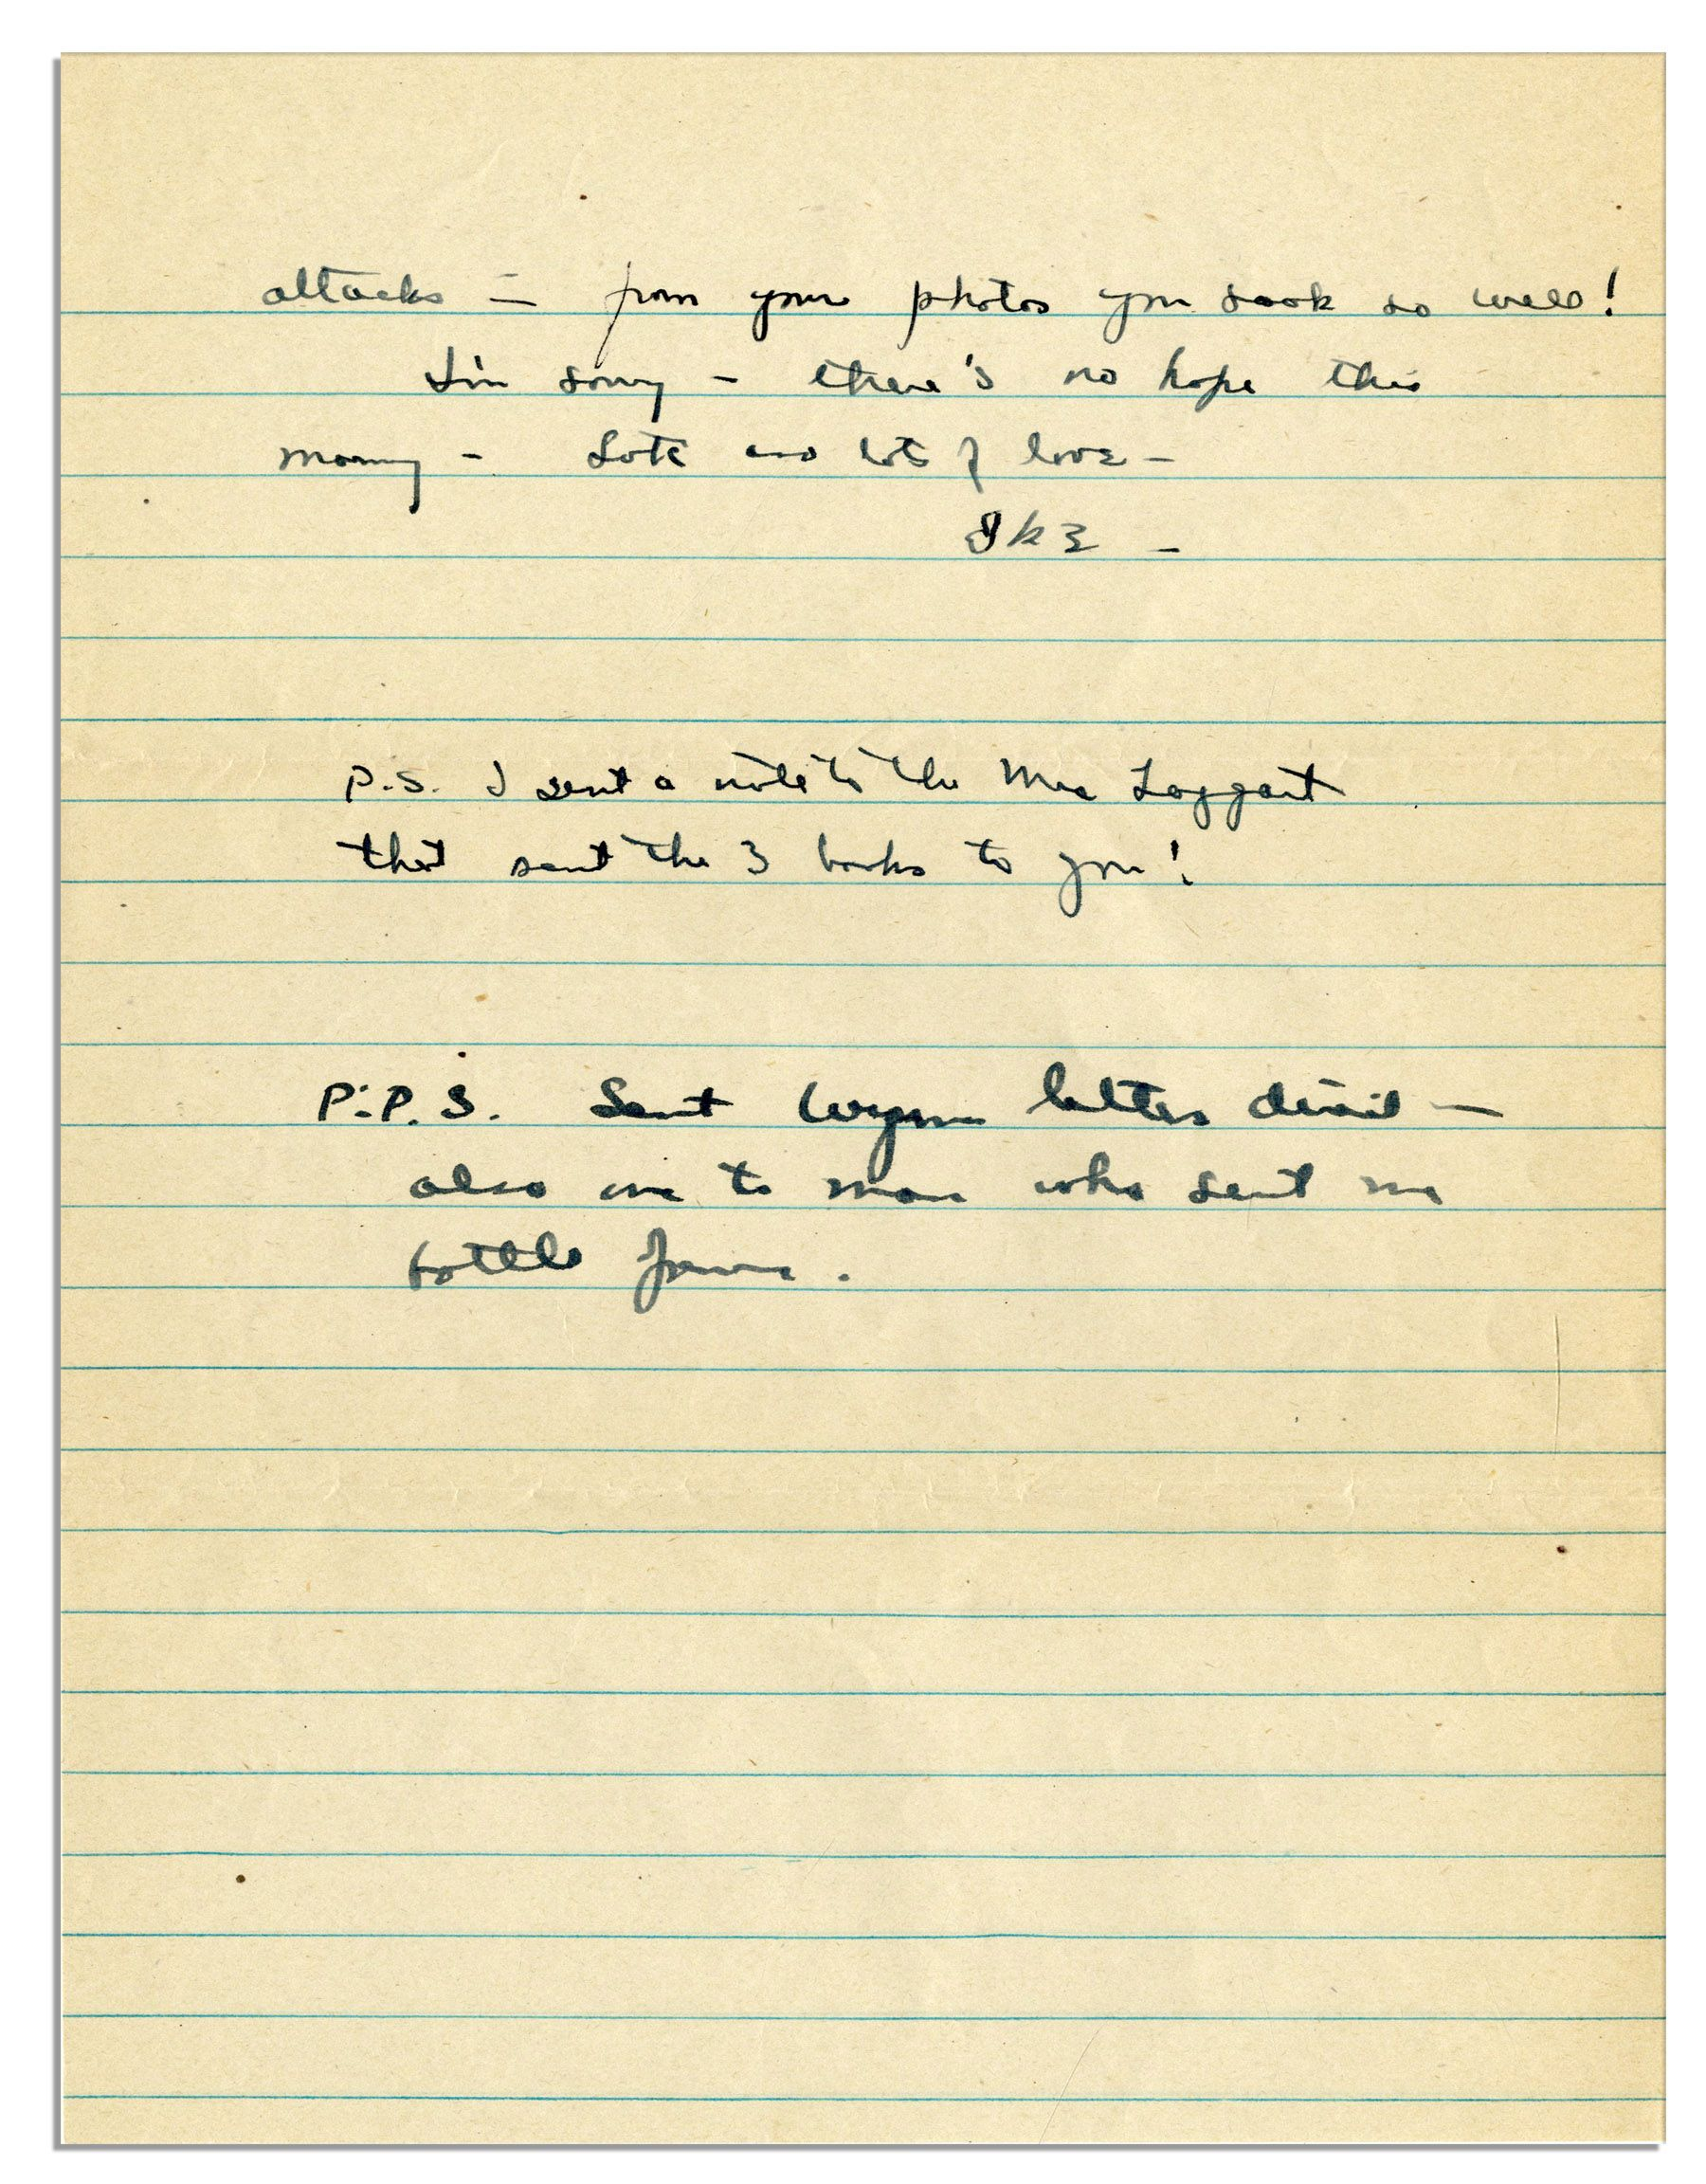 lot detail general dwight eisenhower wwii autograph letter general dwight eisenhower wwii autograph letter signed to his wife mamie thanking her for